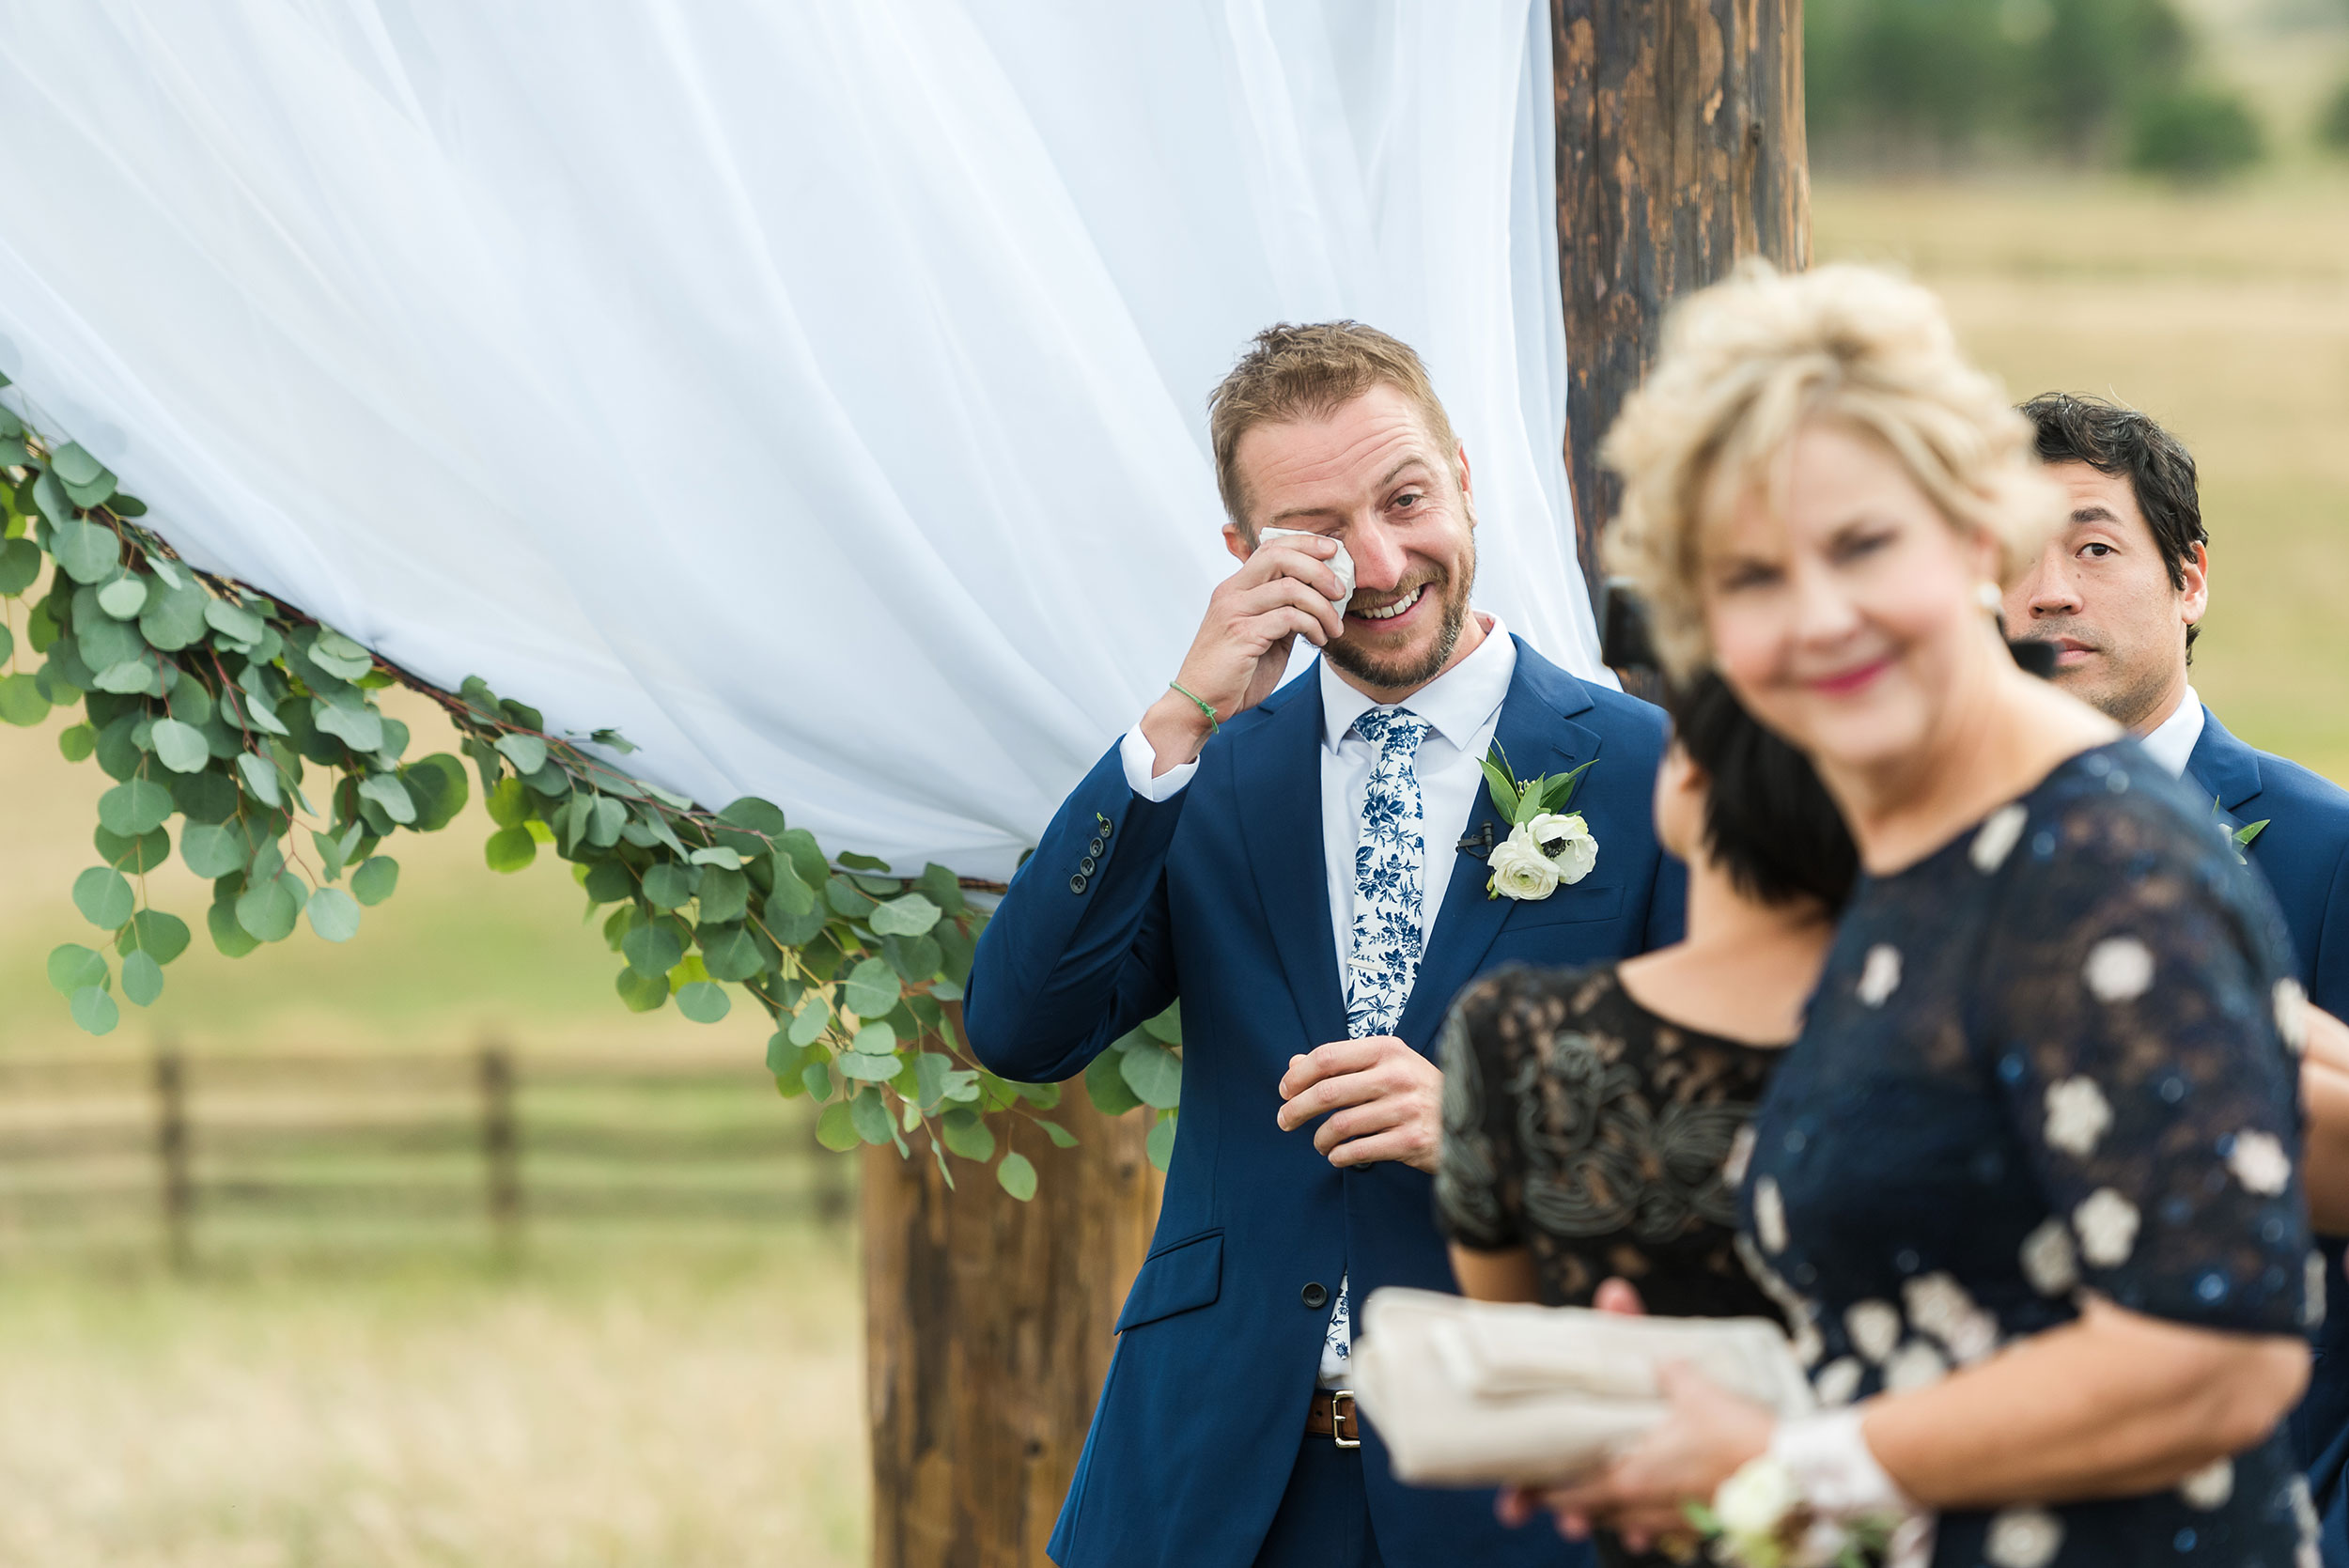 Grooms first look as bride walks down the aisle | Luxe Mountain Weddings